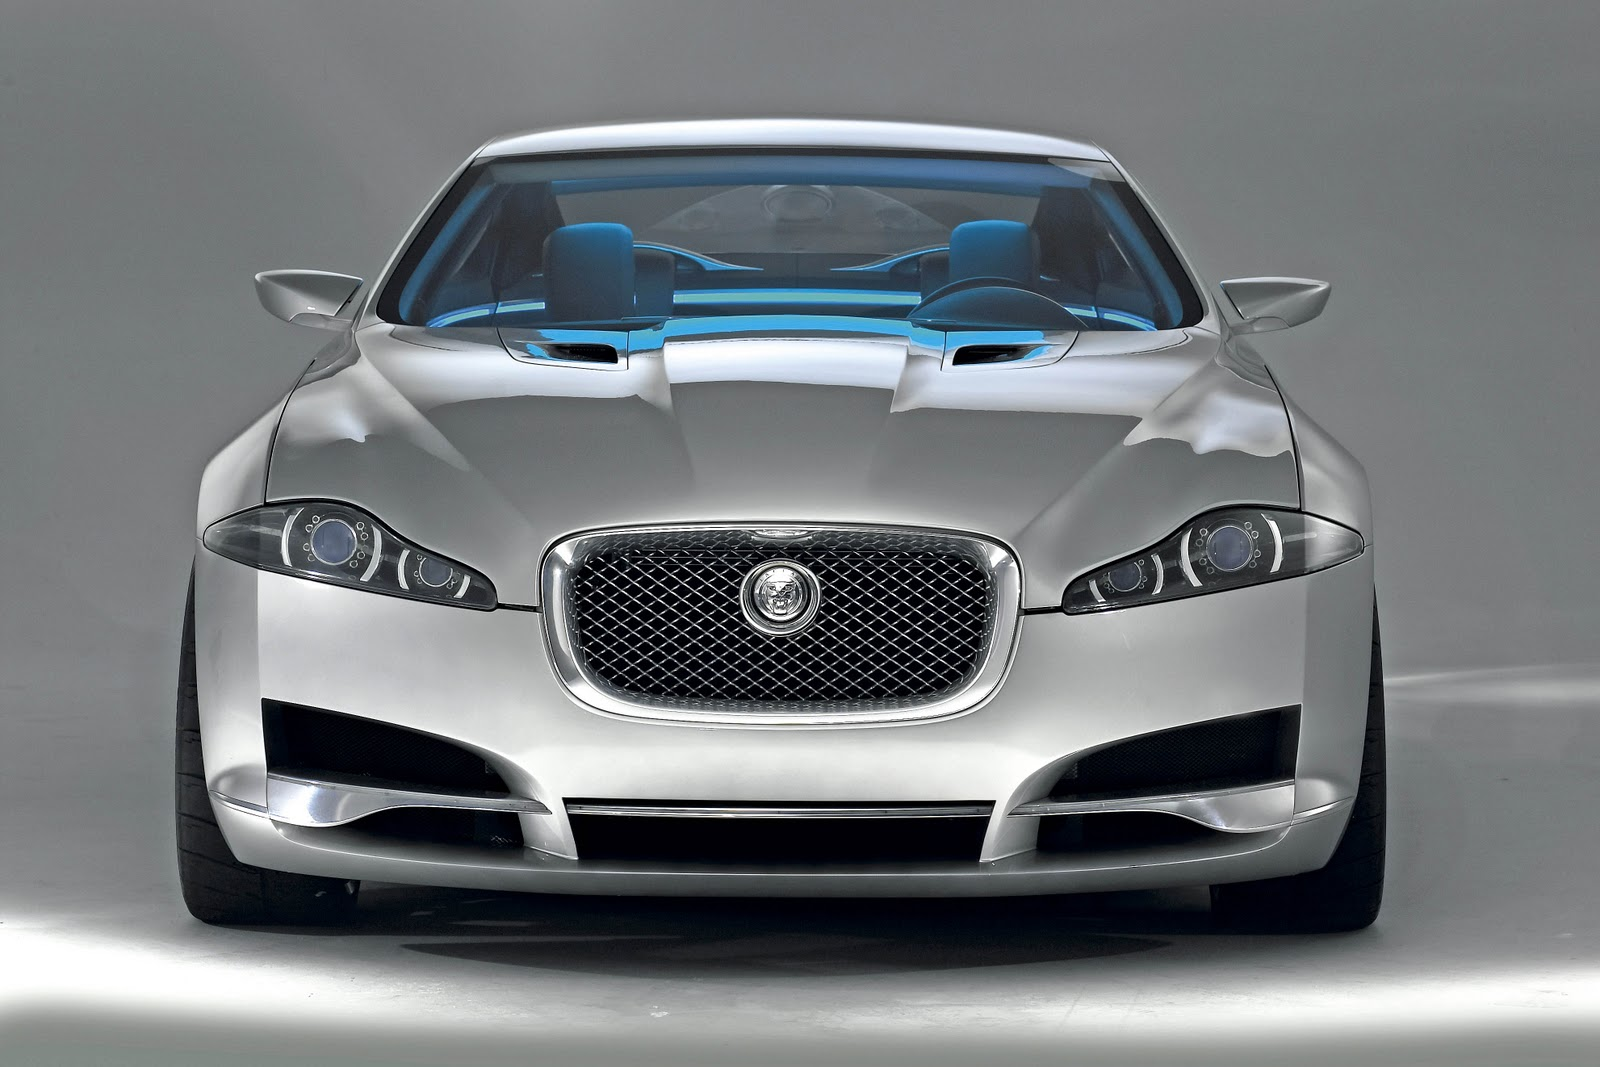 Jaguar Xj Front View HD Wallpaper. Manufacturers : Cars, Jaguar